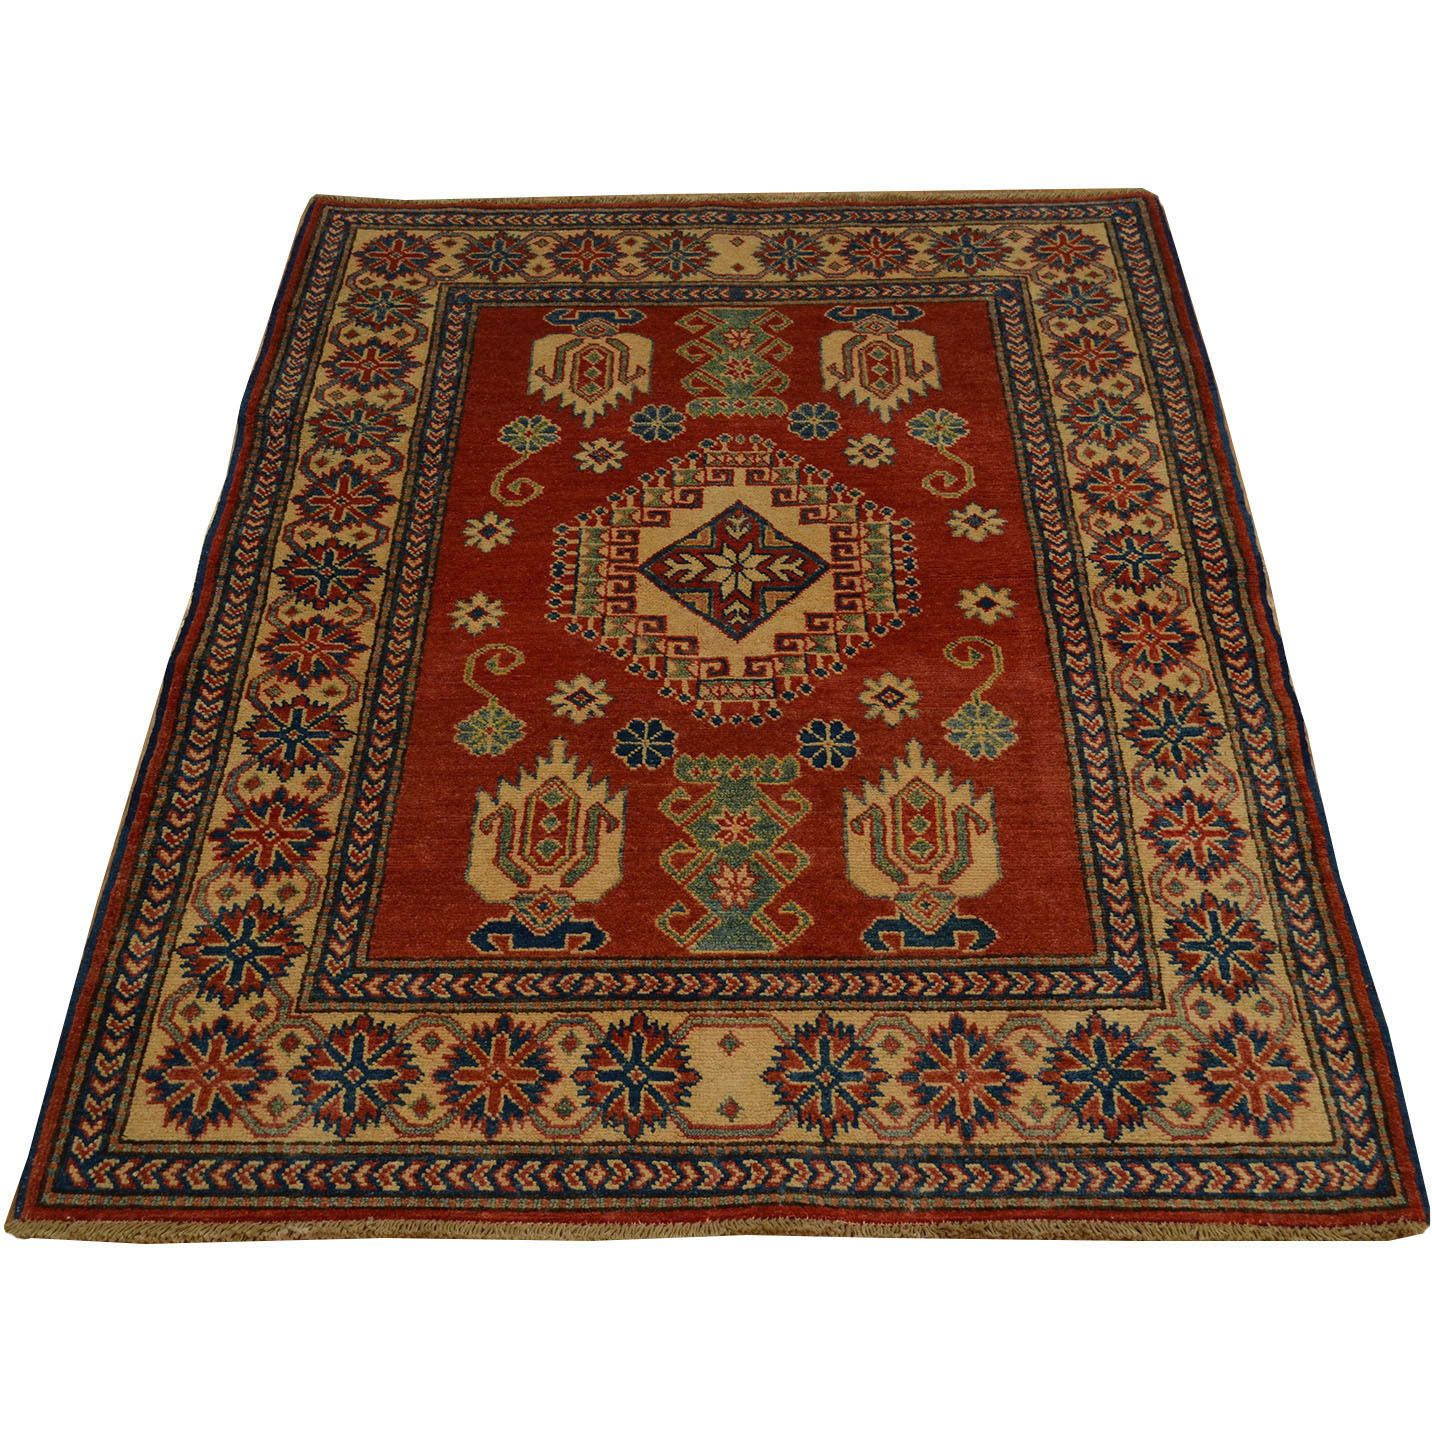 This Beautiful Rug Was Hand Knotted From High Quality Wool To Bring Elegance And